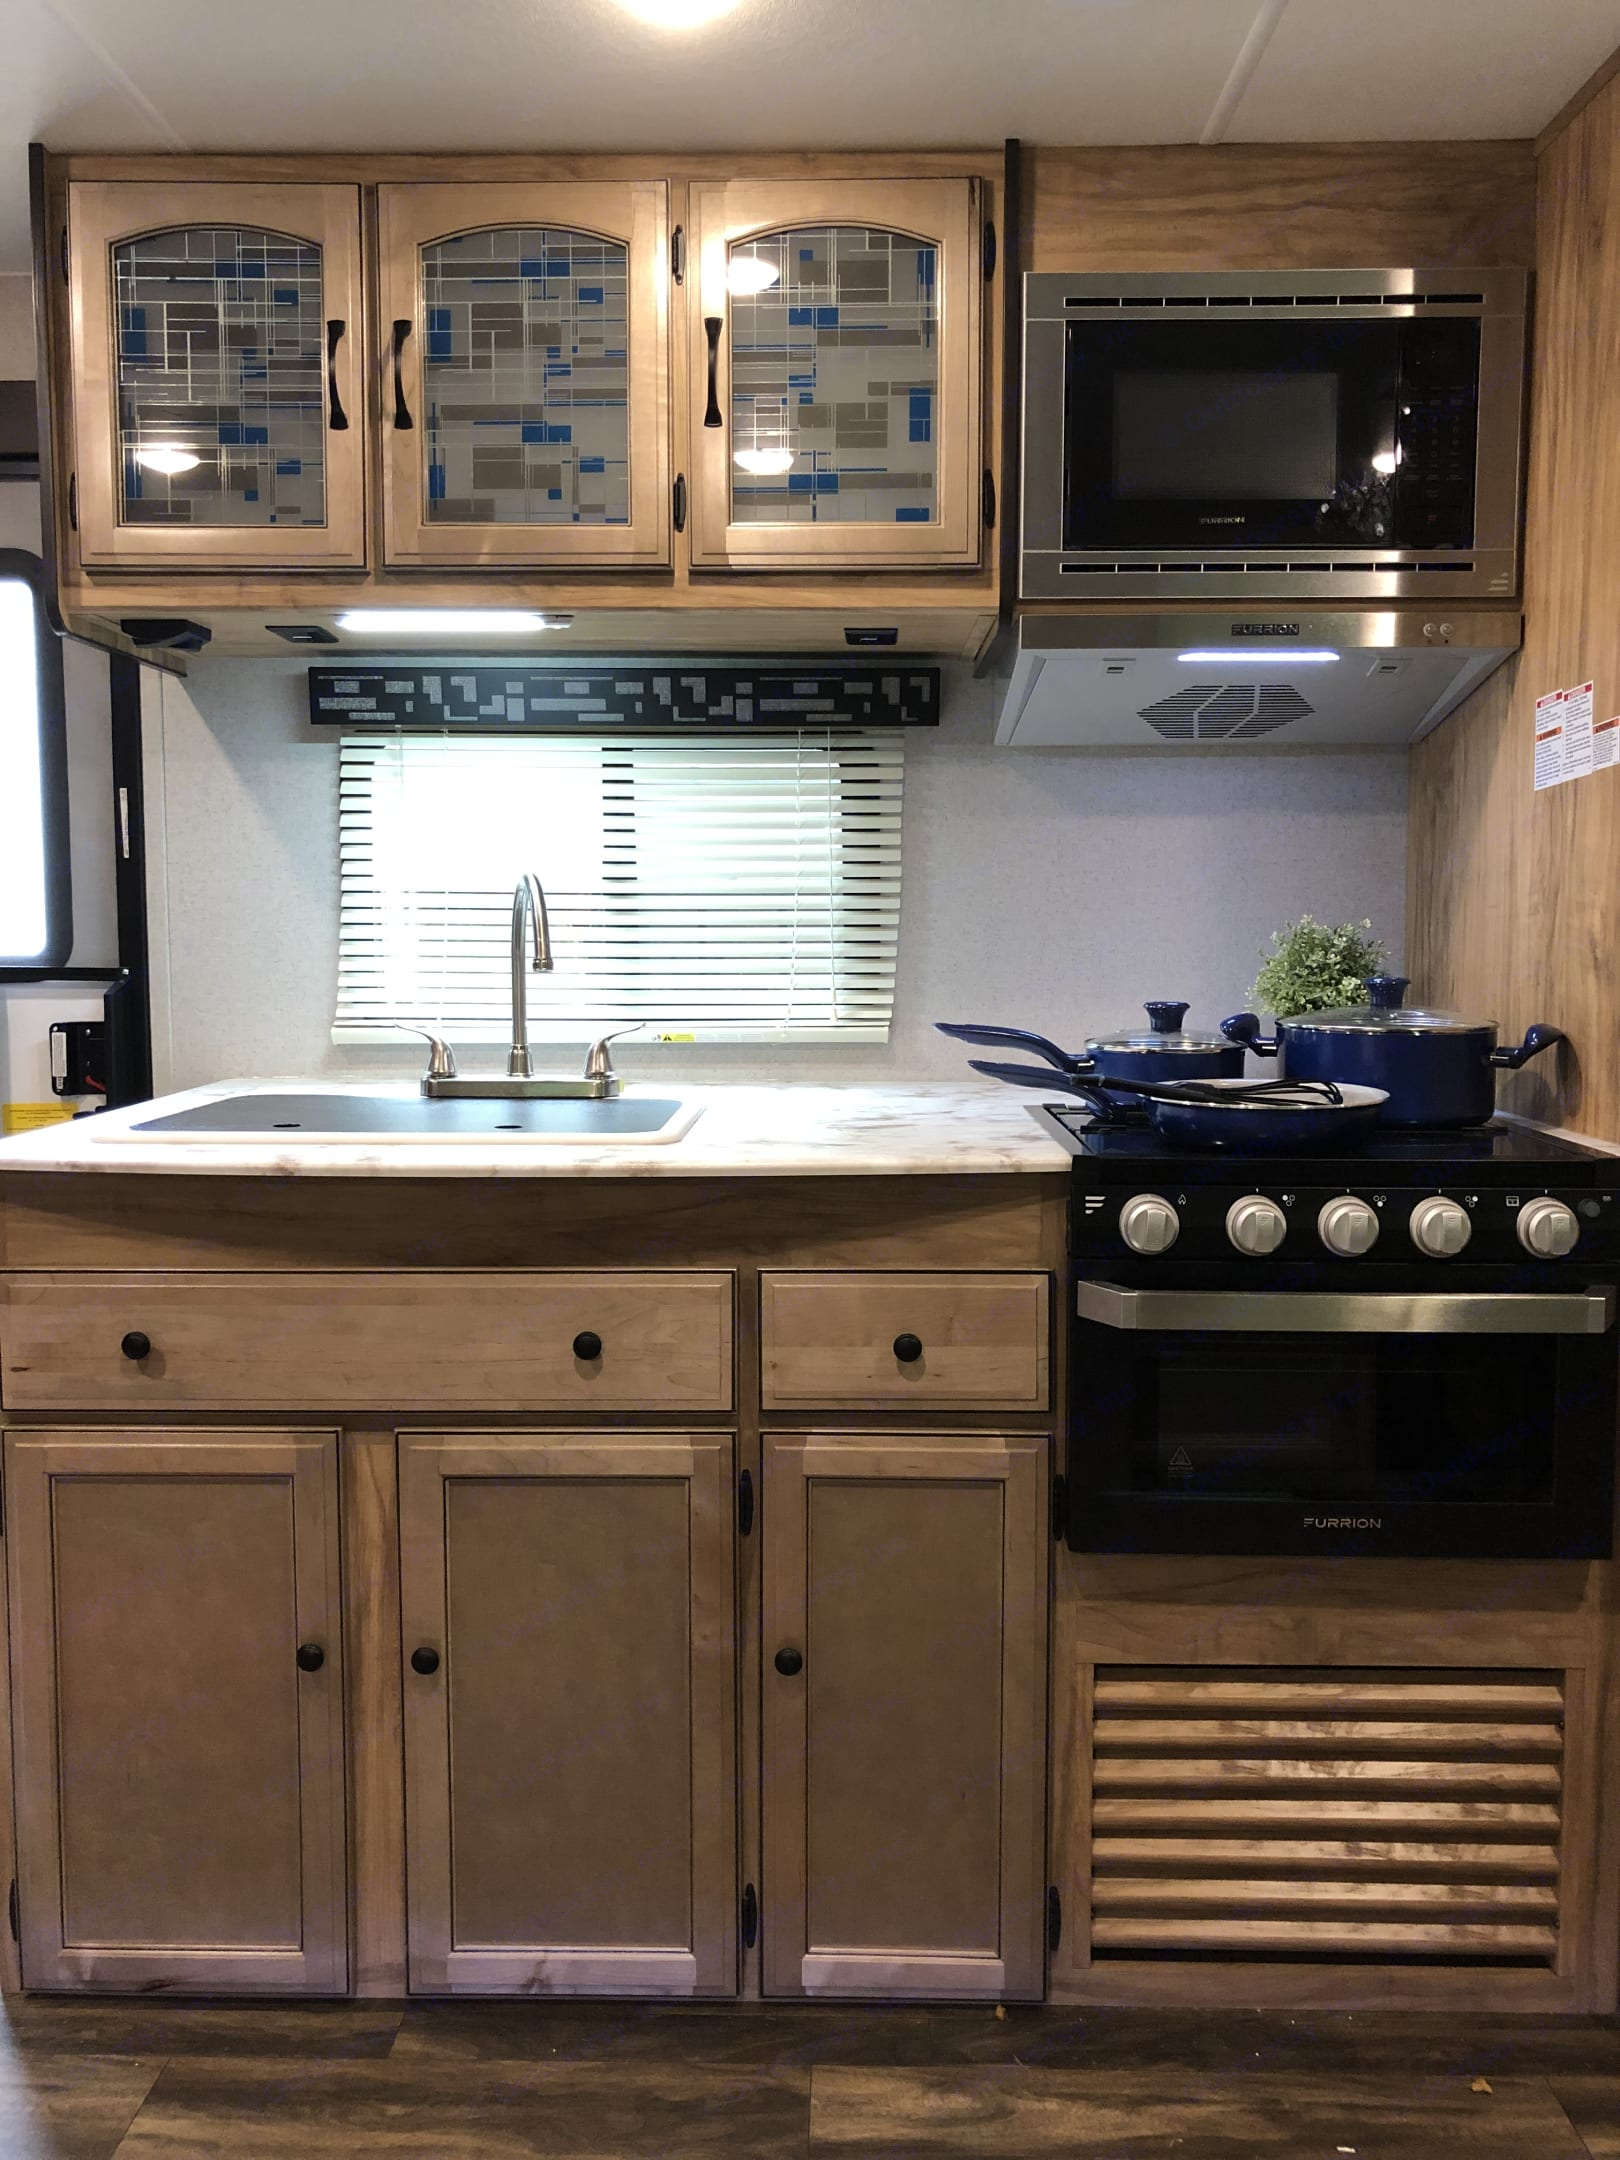 Large counter space with gas stove and oven. Coachmen Freedom Express 2019